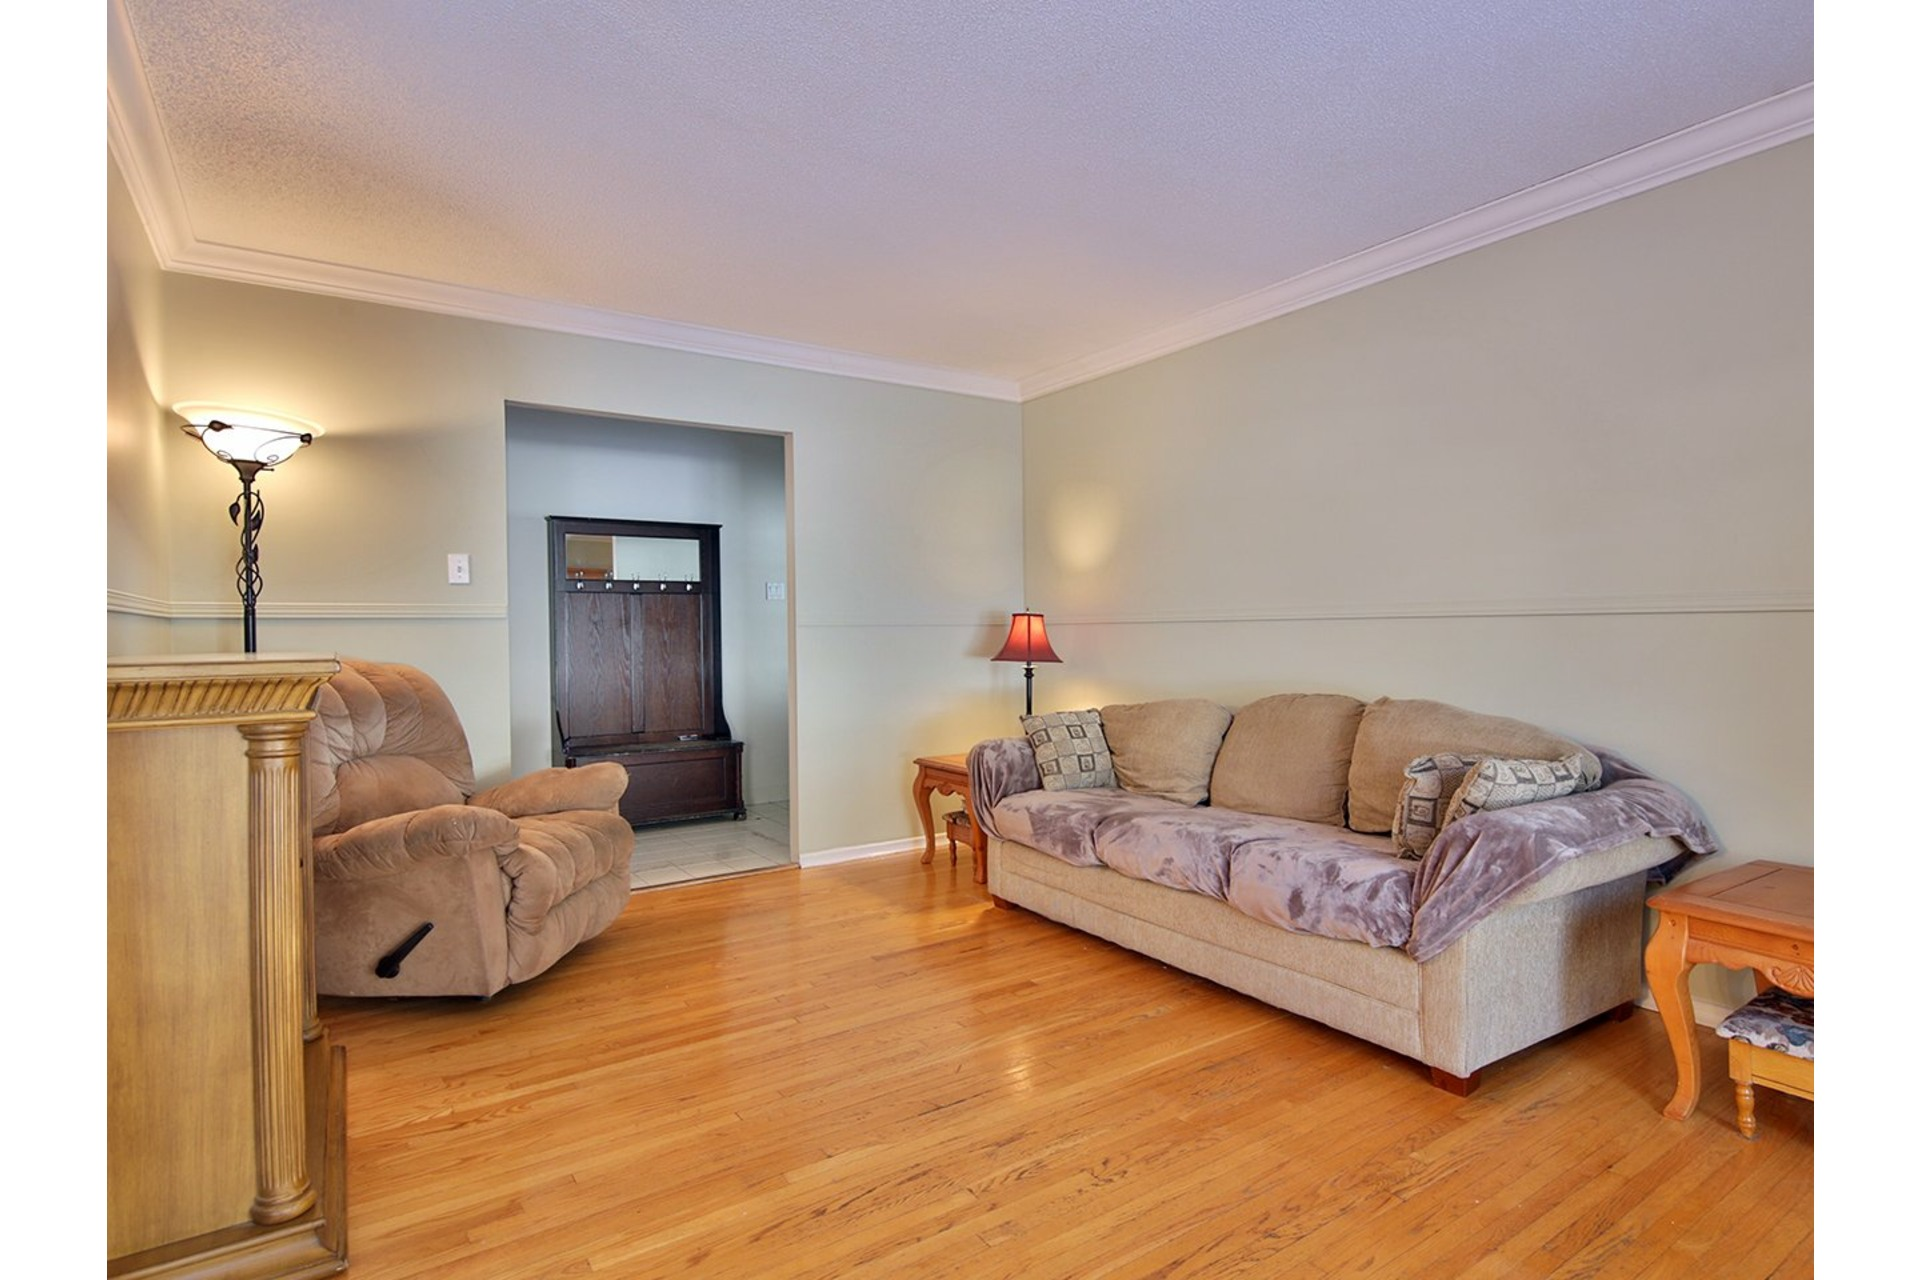 image 8 - House For sale Pierrefonds-Roxboro Montréal  - 9 rooms